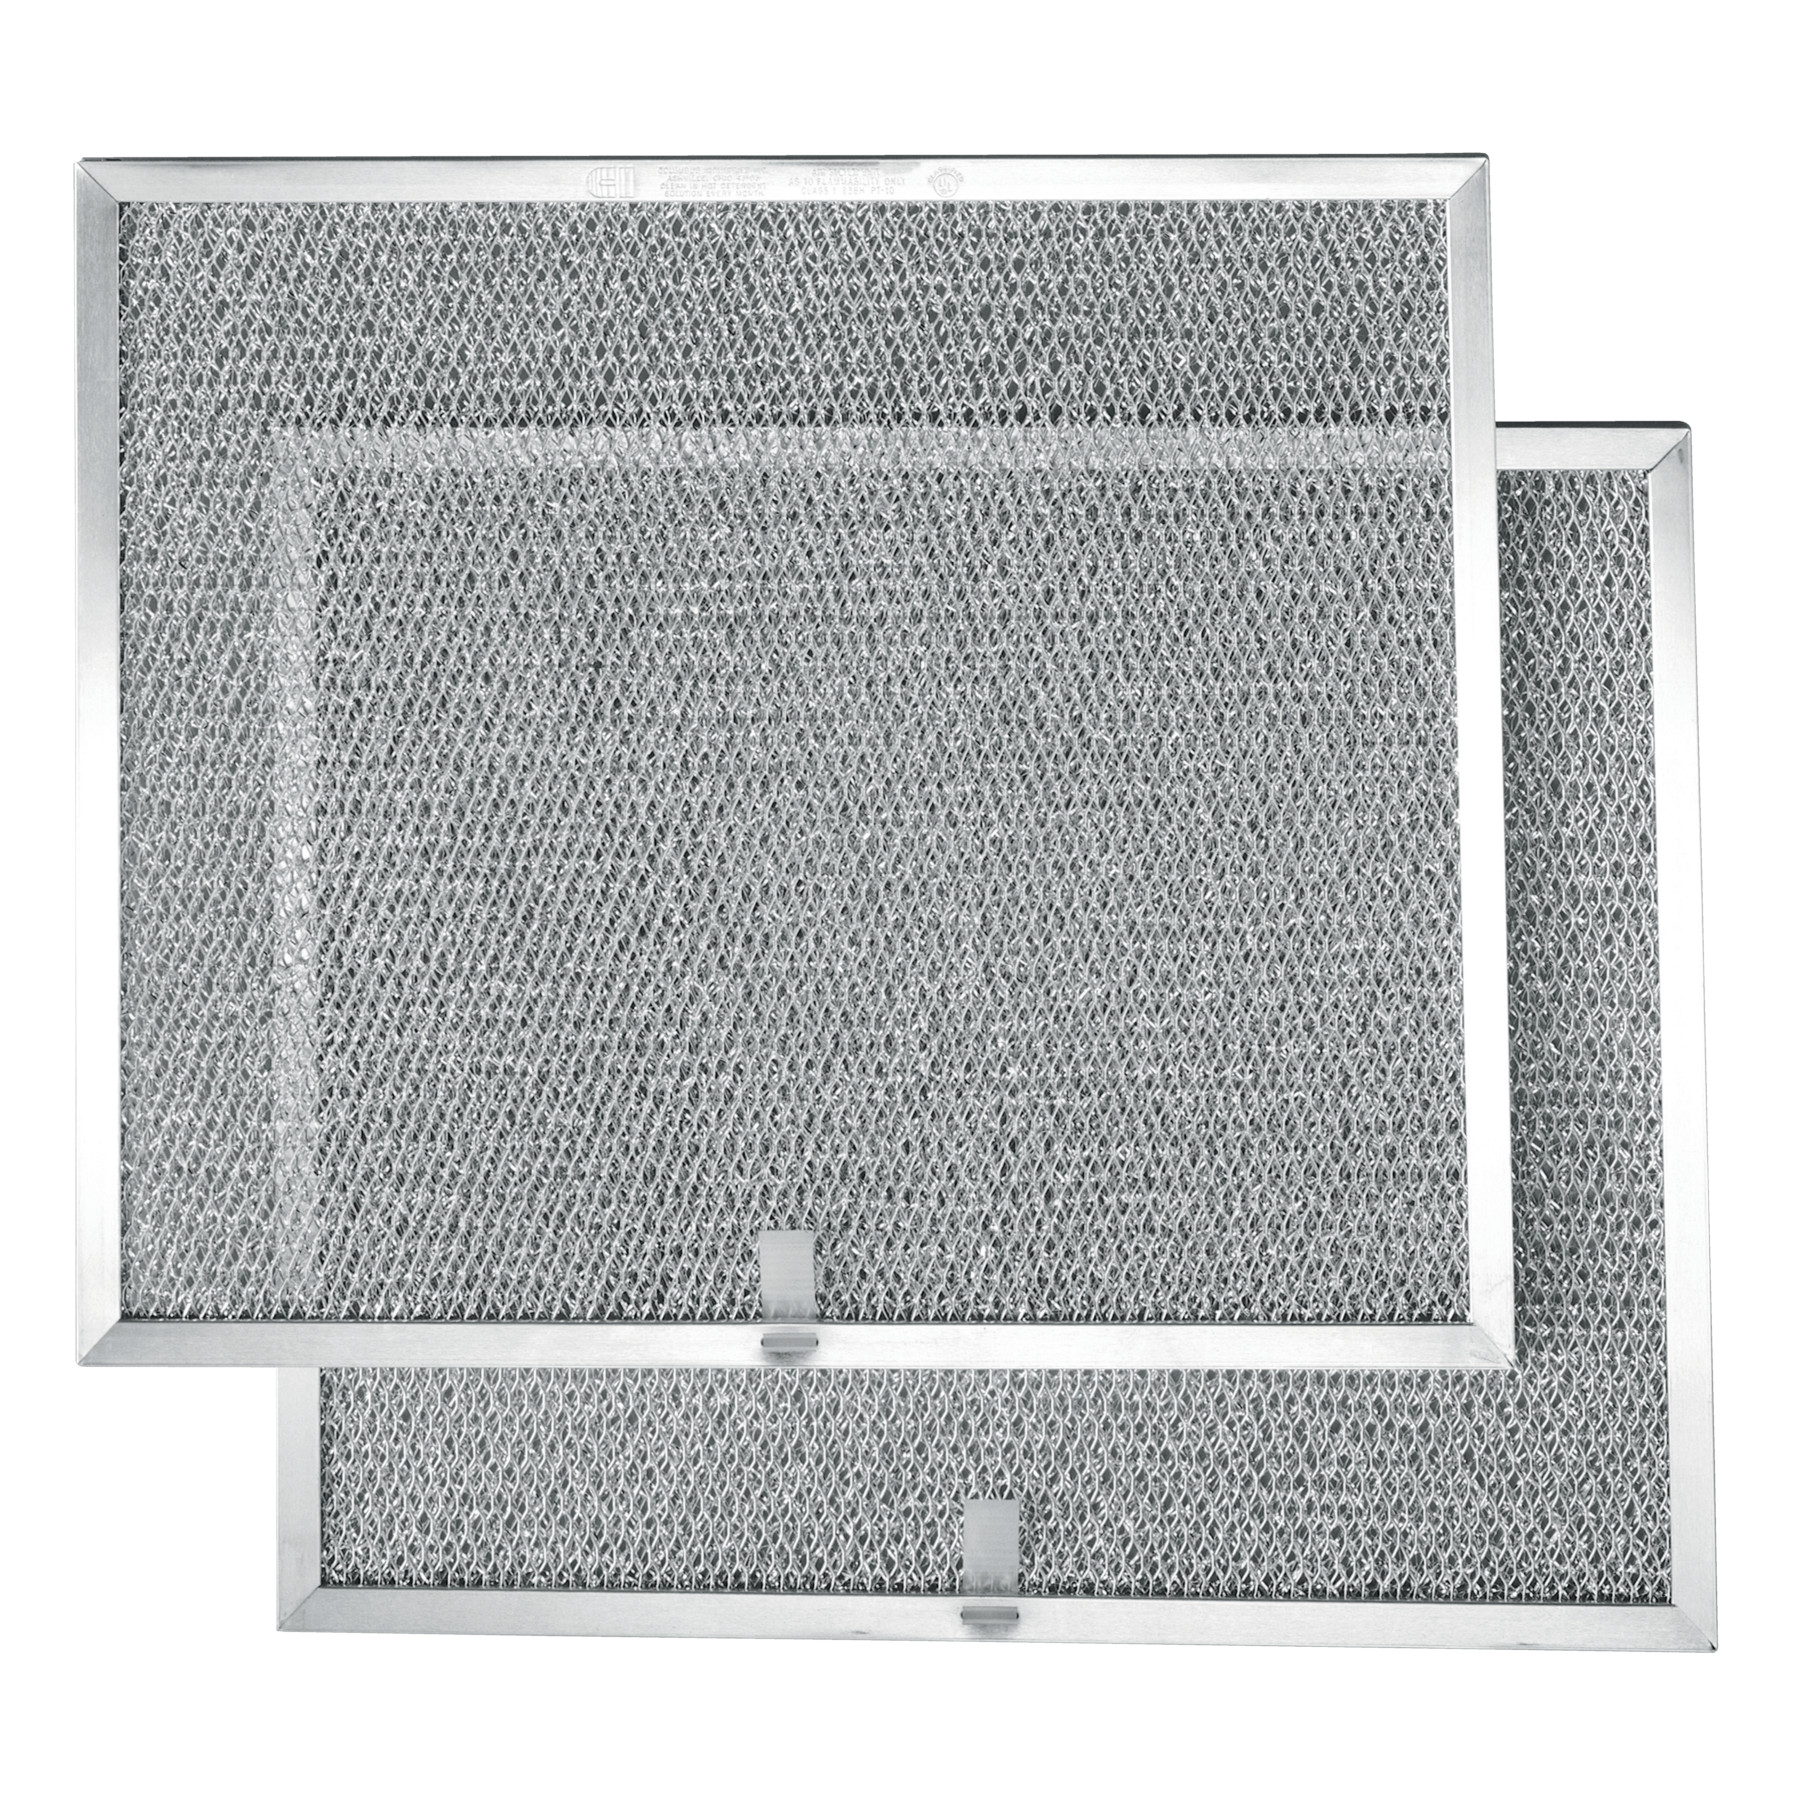 Aluminum Mesh Range Hoods Filter BPS1FA36 By Primeswift Replacement for Filter 1172774 99010300,2 Pack